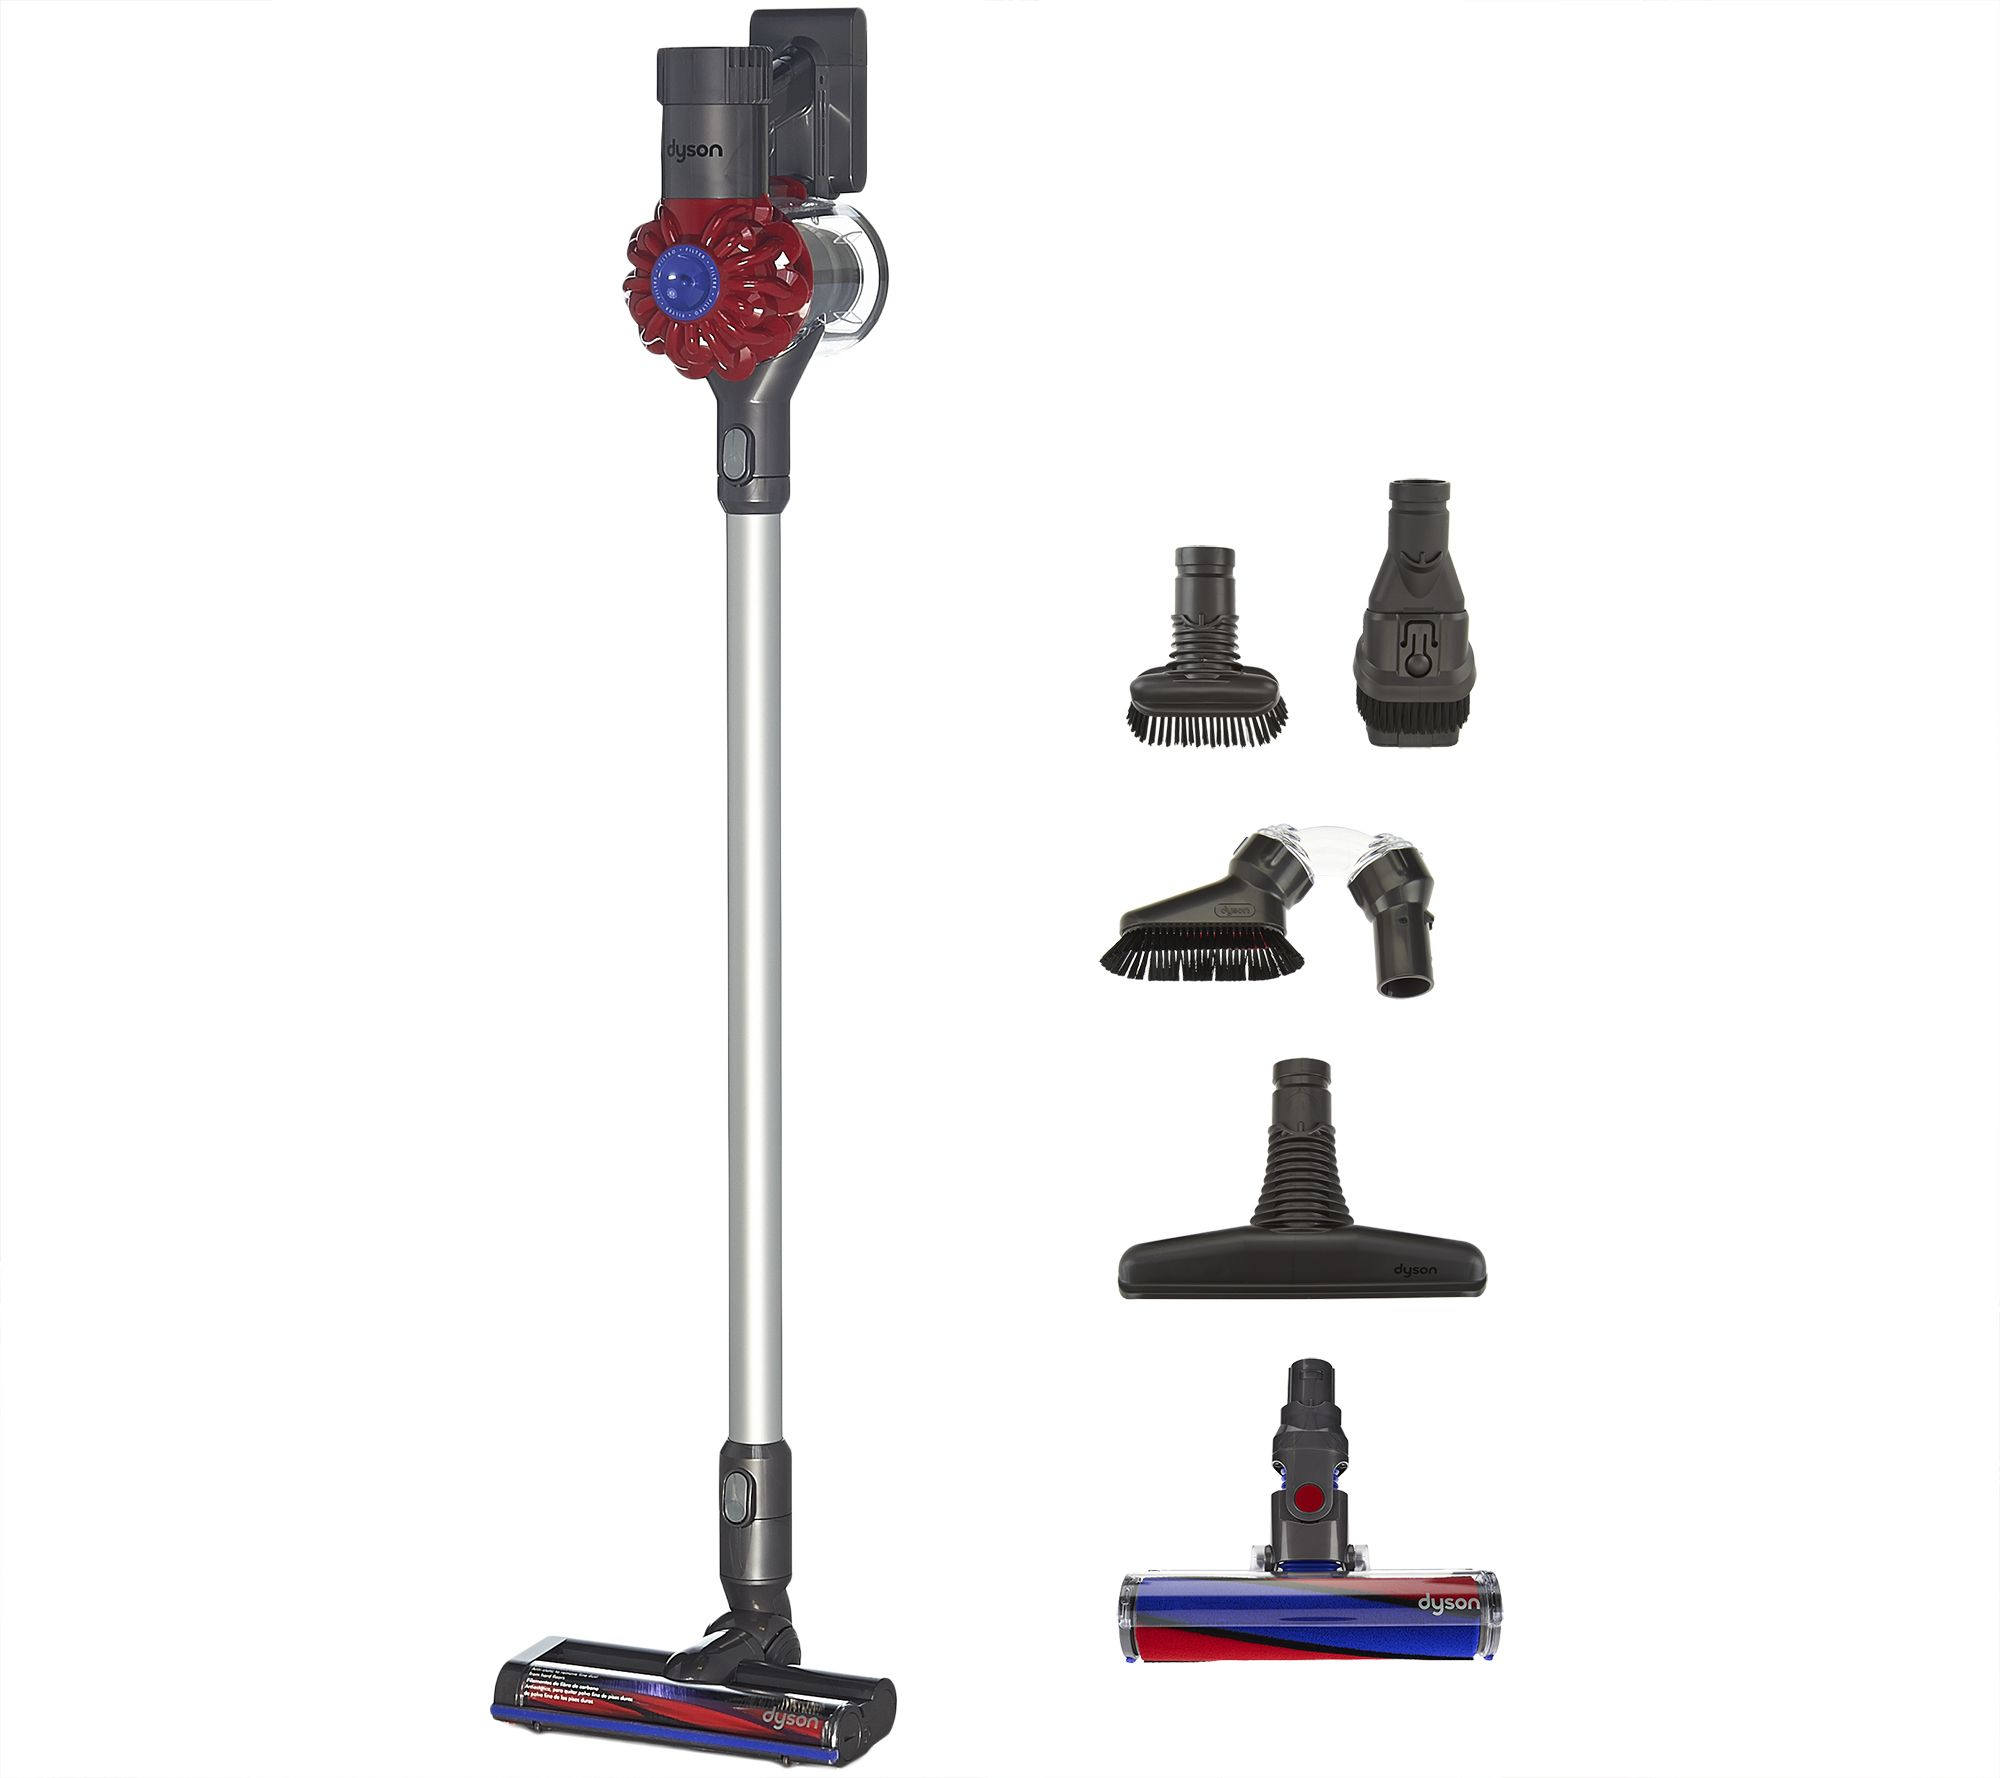 dyson v6 cordfree vacuum with fluffy head 5 attachments. Black Bedroom Furniture Sets. Home Design Ideas